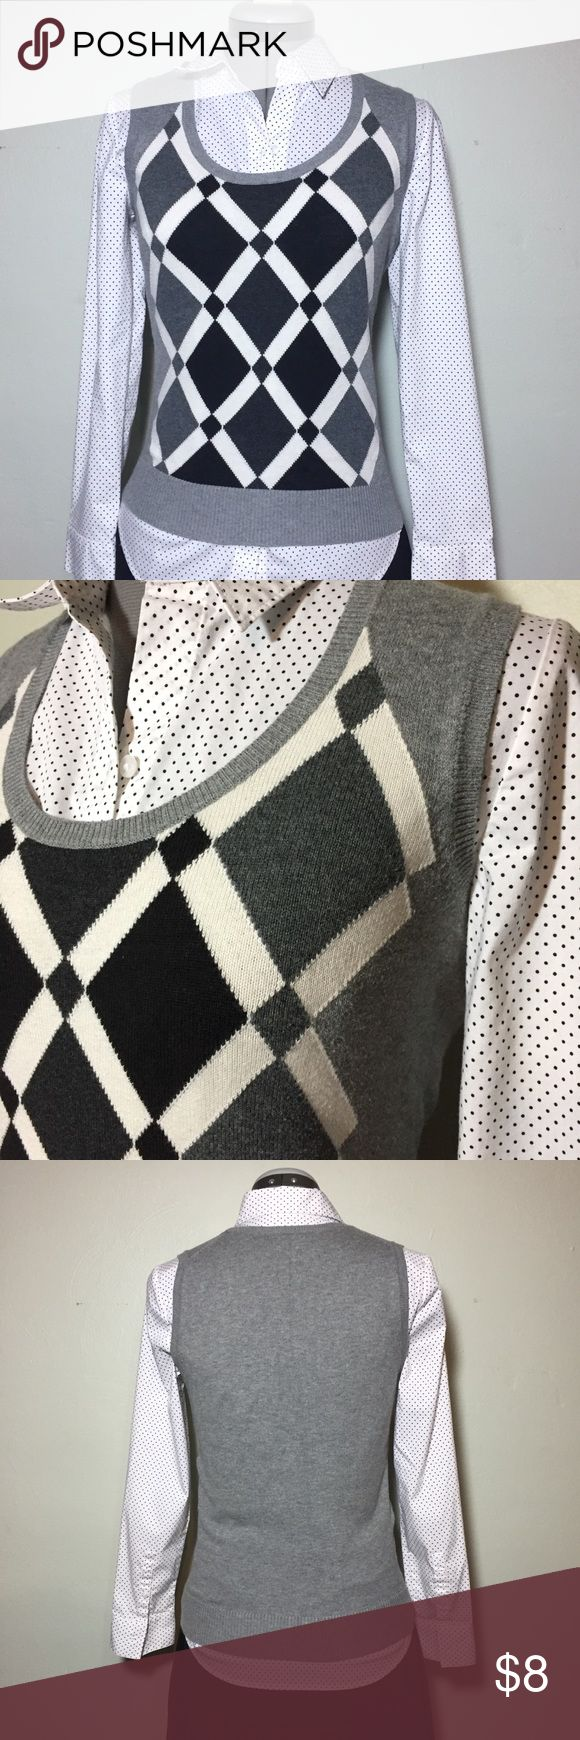 "The Limited Gray & Black Argyle Sweater Vest XS The Limited Gray & Black Argyle Sweater Vest. Size XS measures flat: 16"" across chest, 22"" long. 100% cotton. Hand Wash. MC/102217 The Limited Sweaters"